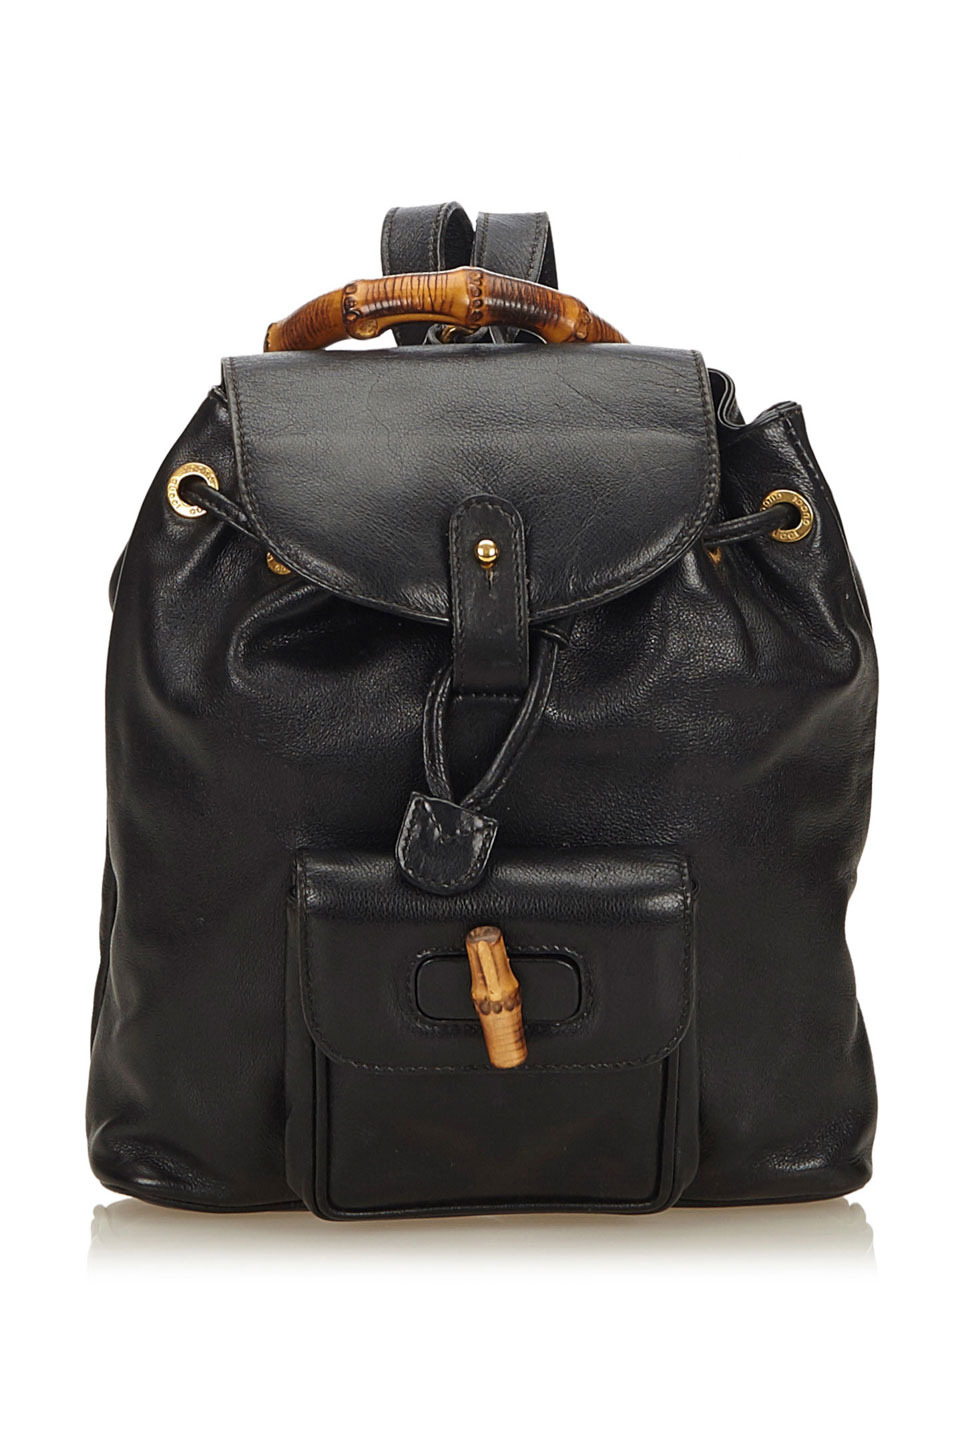 GUCCI BAMBOO LEATHER DRAWSTRING BACKPACK IN BLACK